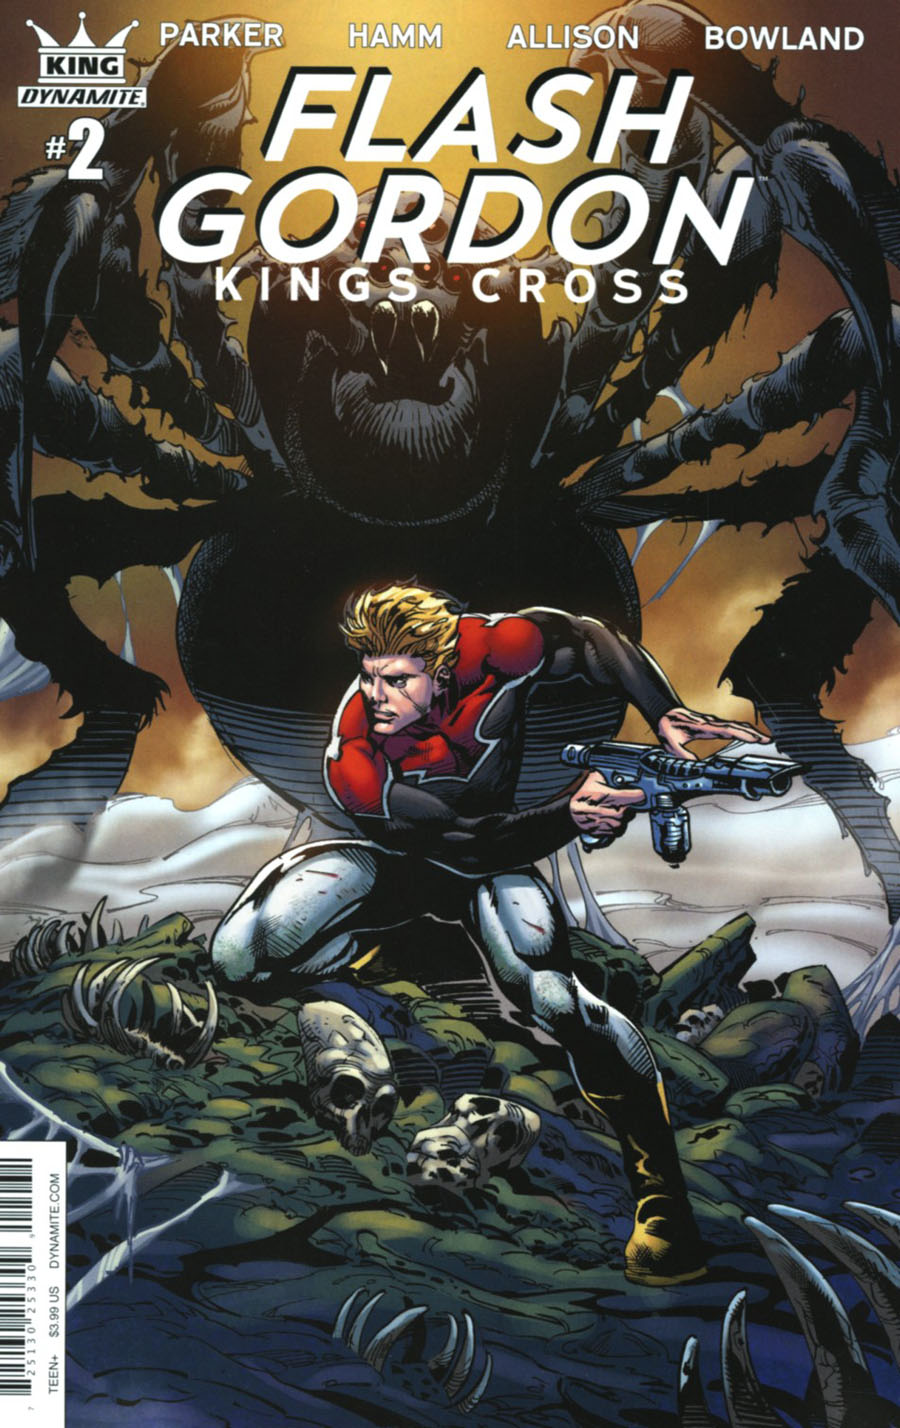 Flash Gordon Kings Cross #2 Cover C Variant Roberto Castro Subscription Cover